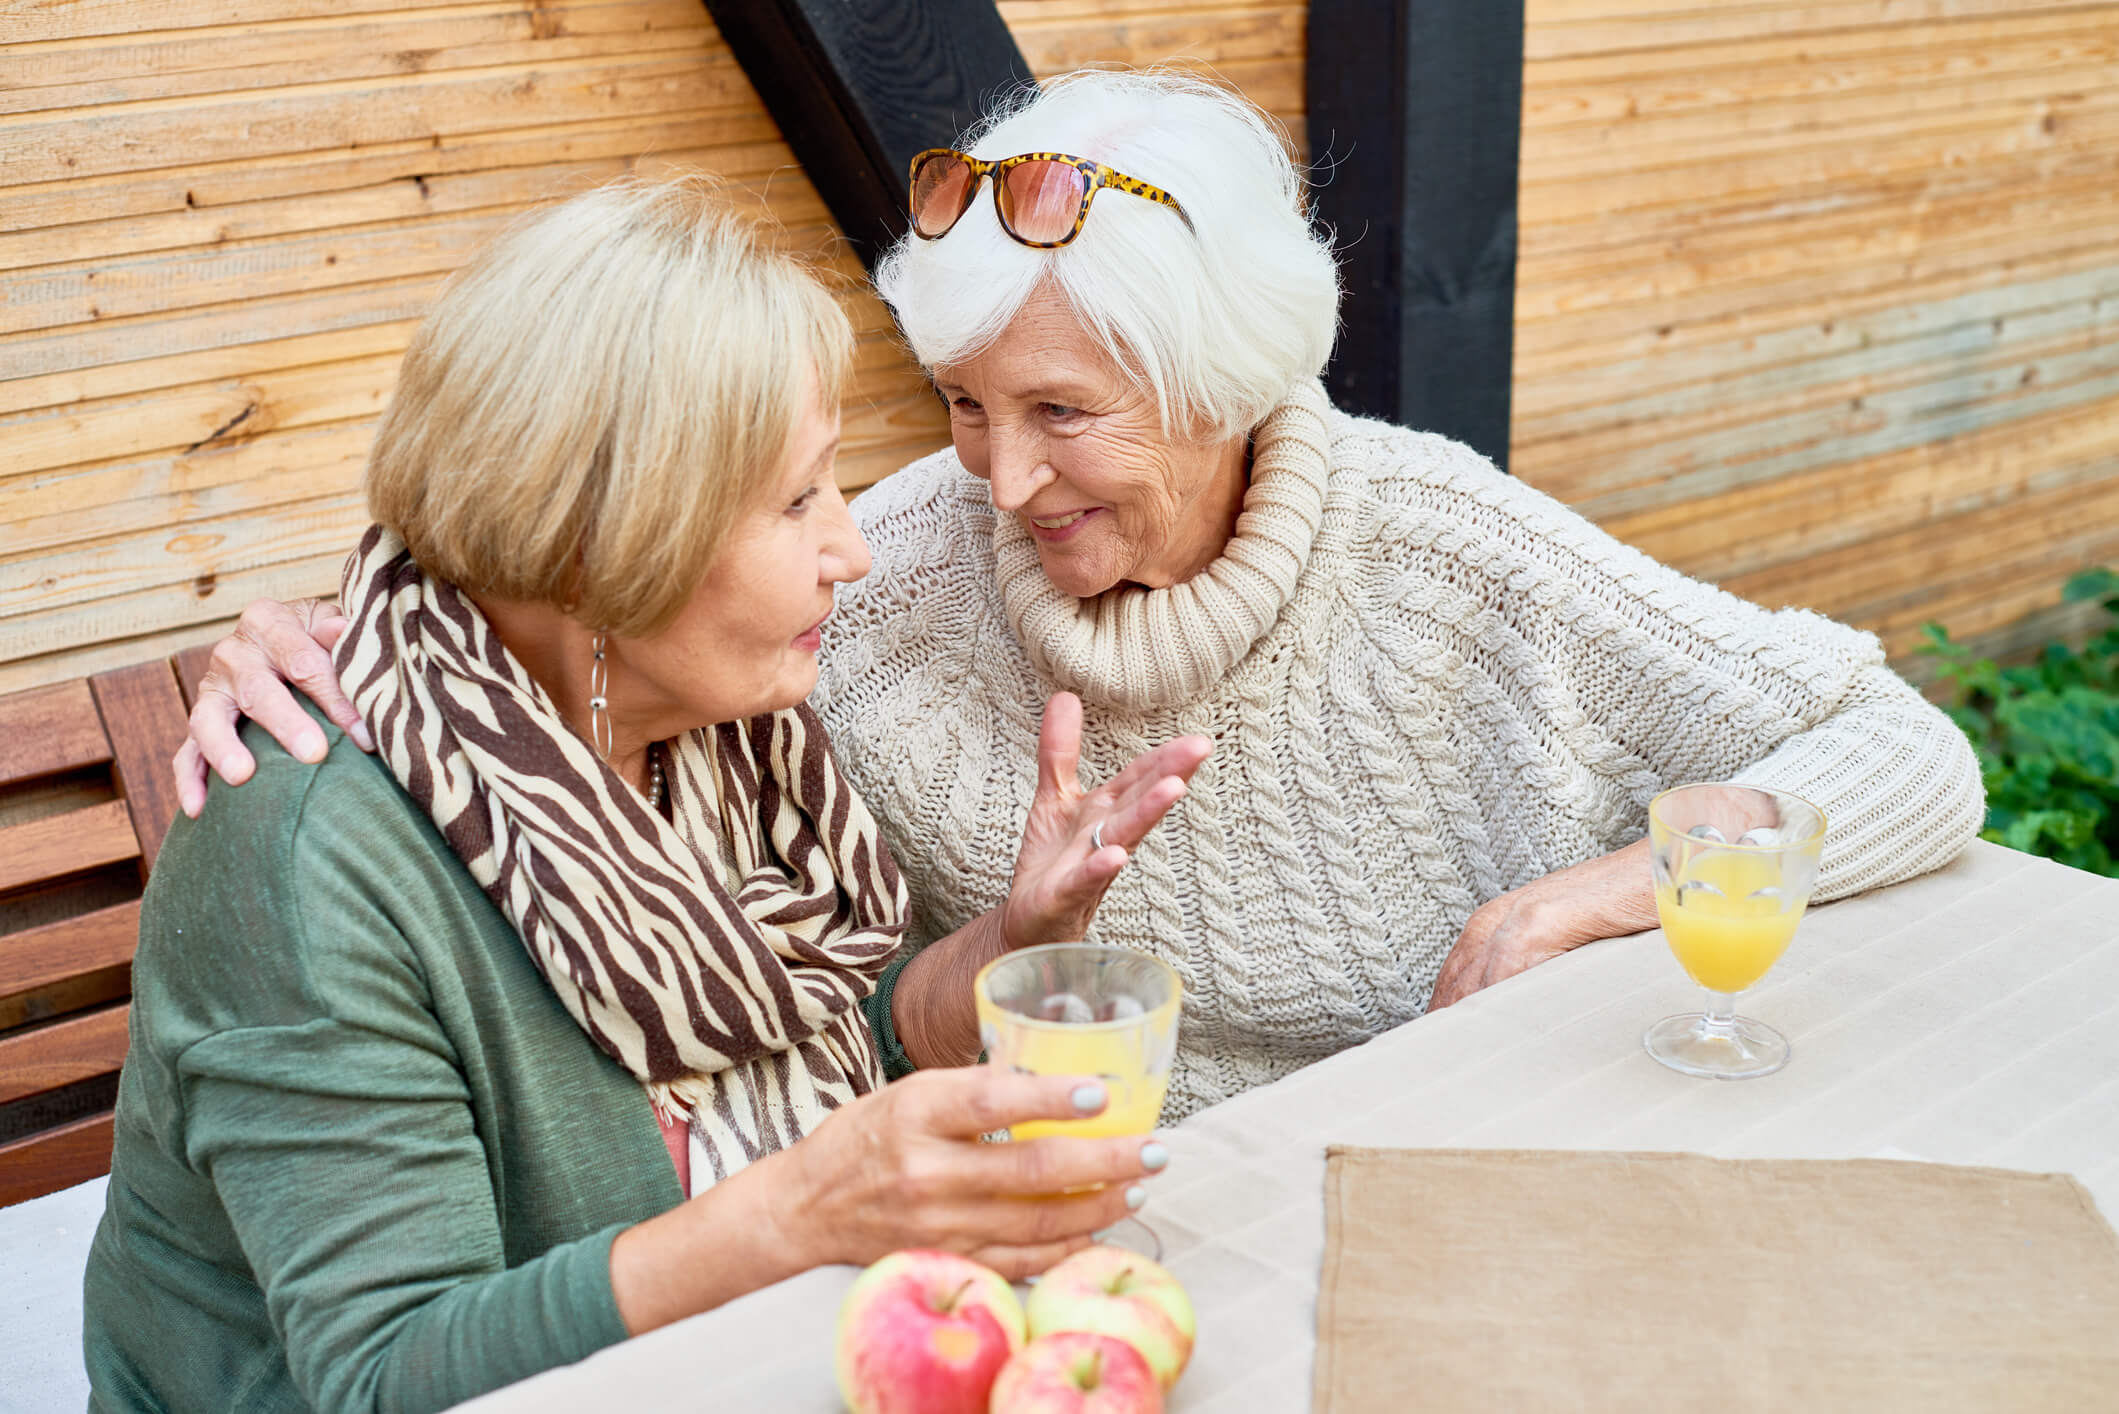 21 Tips On Transitioning A Loved One To Dementia Care near Baltimore MD